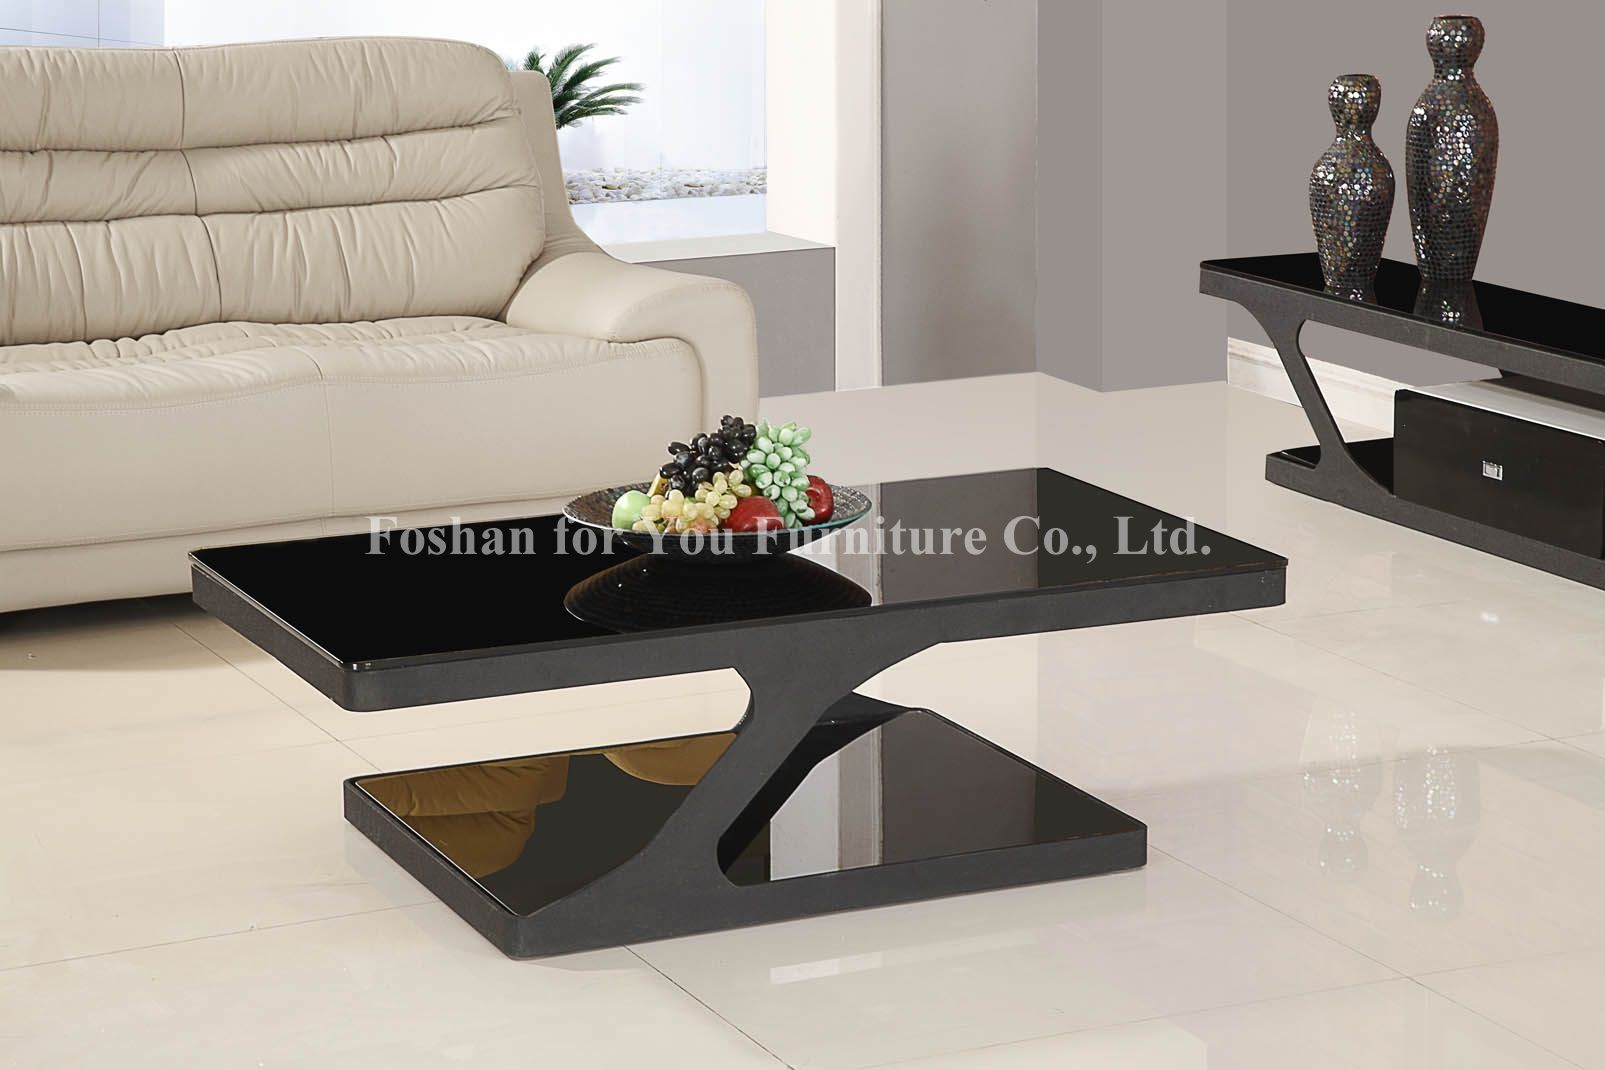 china-living-room-furniture-coffee-table-t (1605×1070